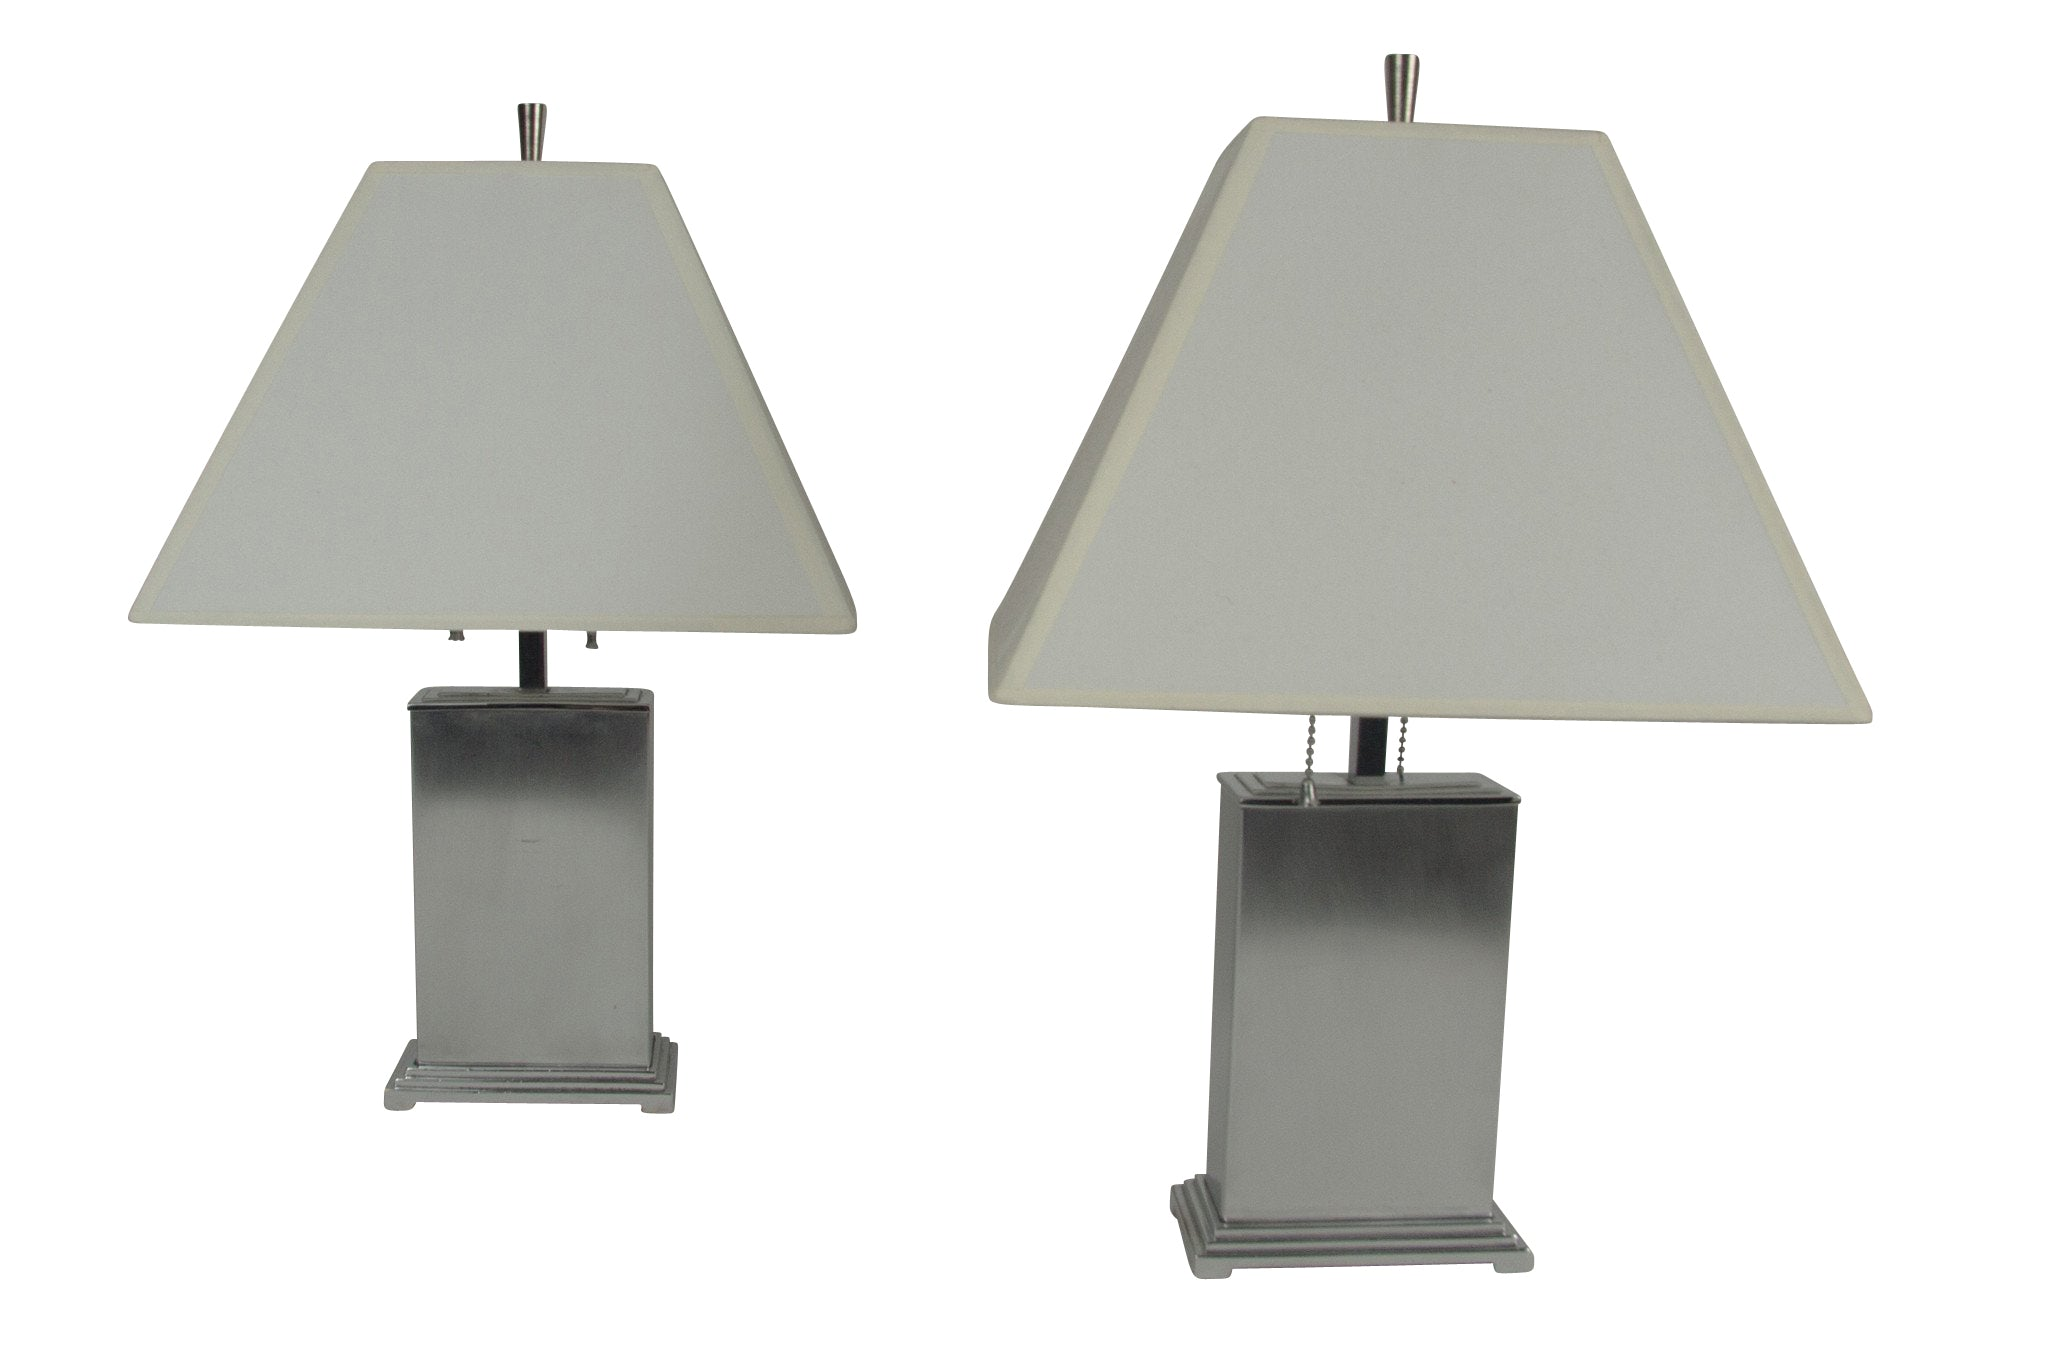 A Pair of Steel and Chrome Table Lamps by Chase